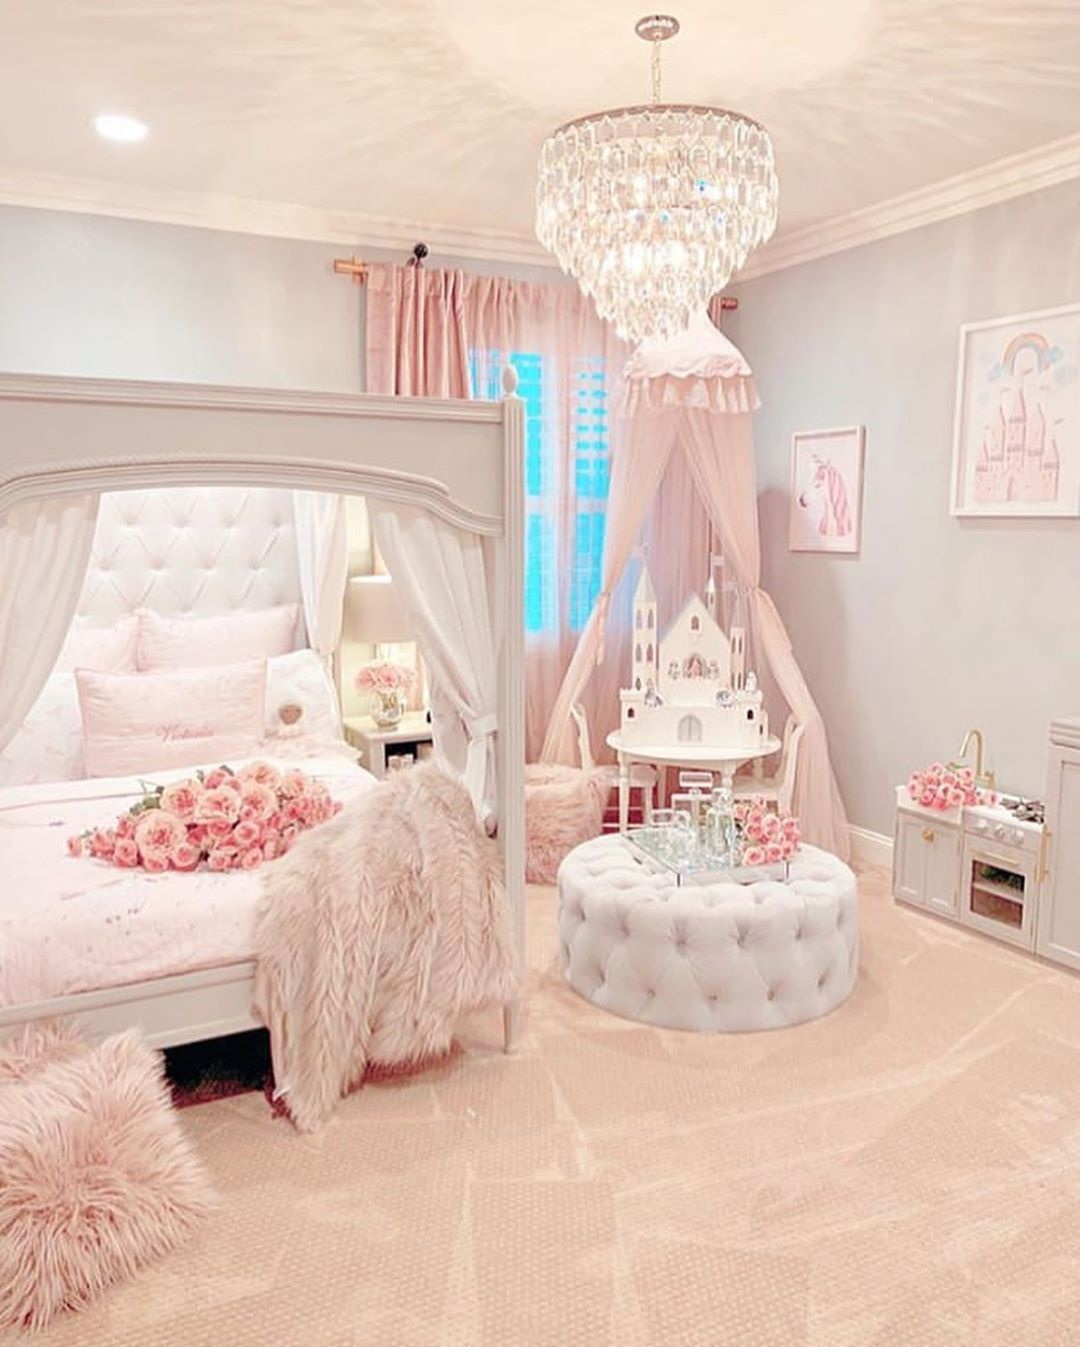 Lynda Correa On Instagram Wow Absolutely Stunning Dreamy Princess Room By Rh Interior Designs Lux Pink Bedroom For Girls Girl Room Girl Bedroom Decor